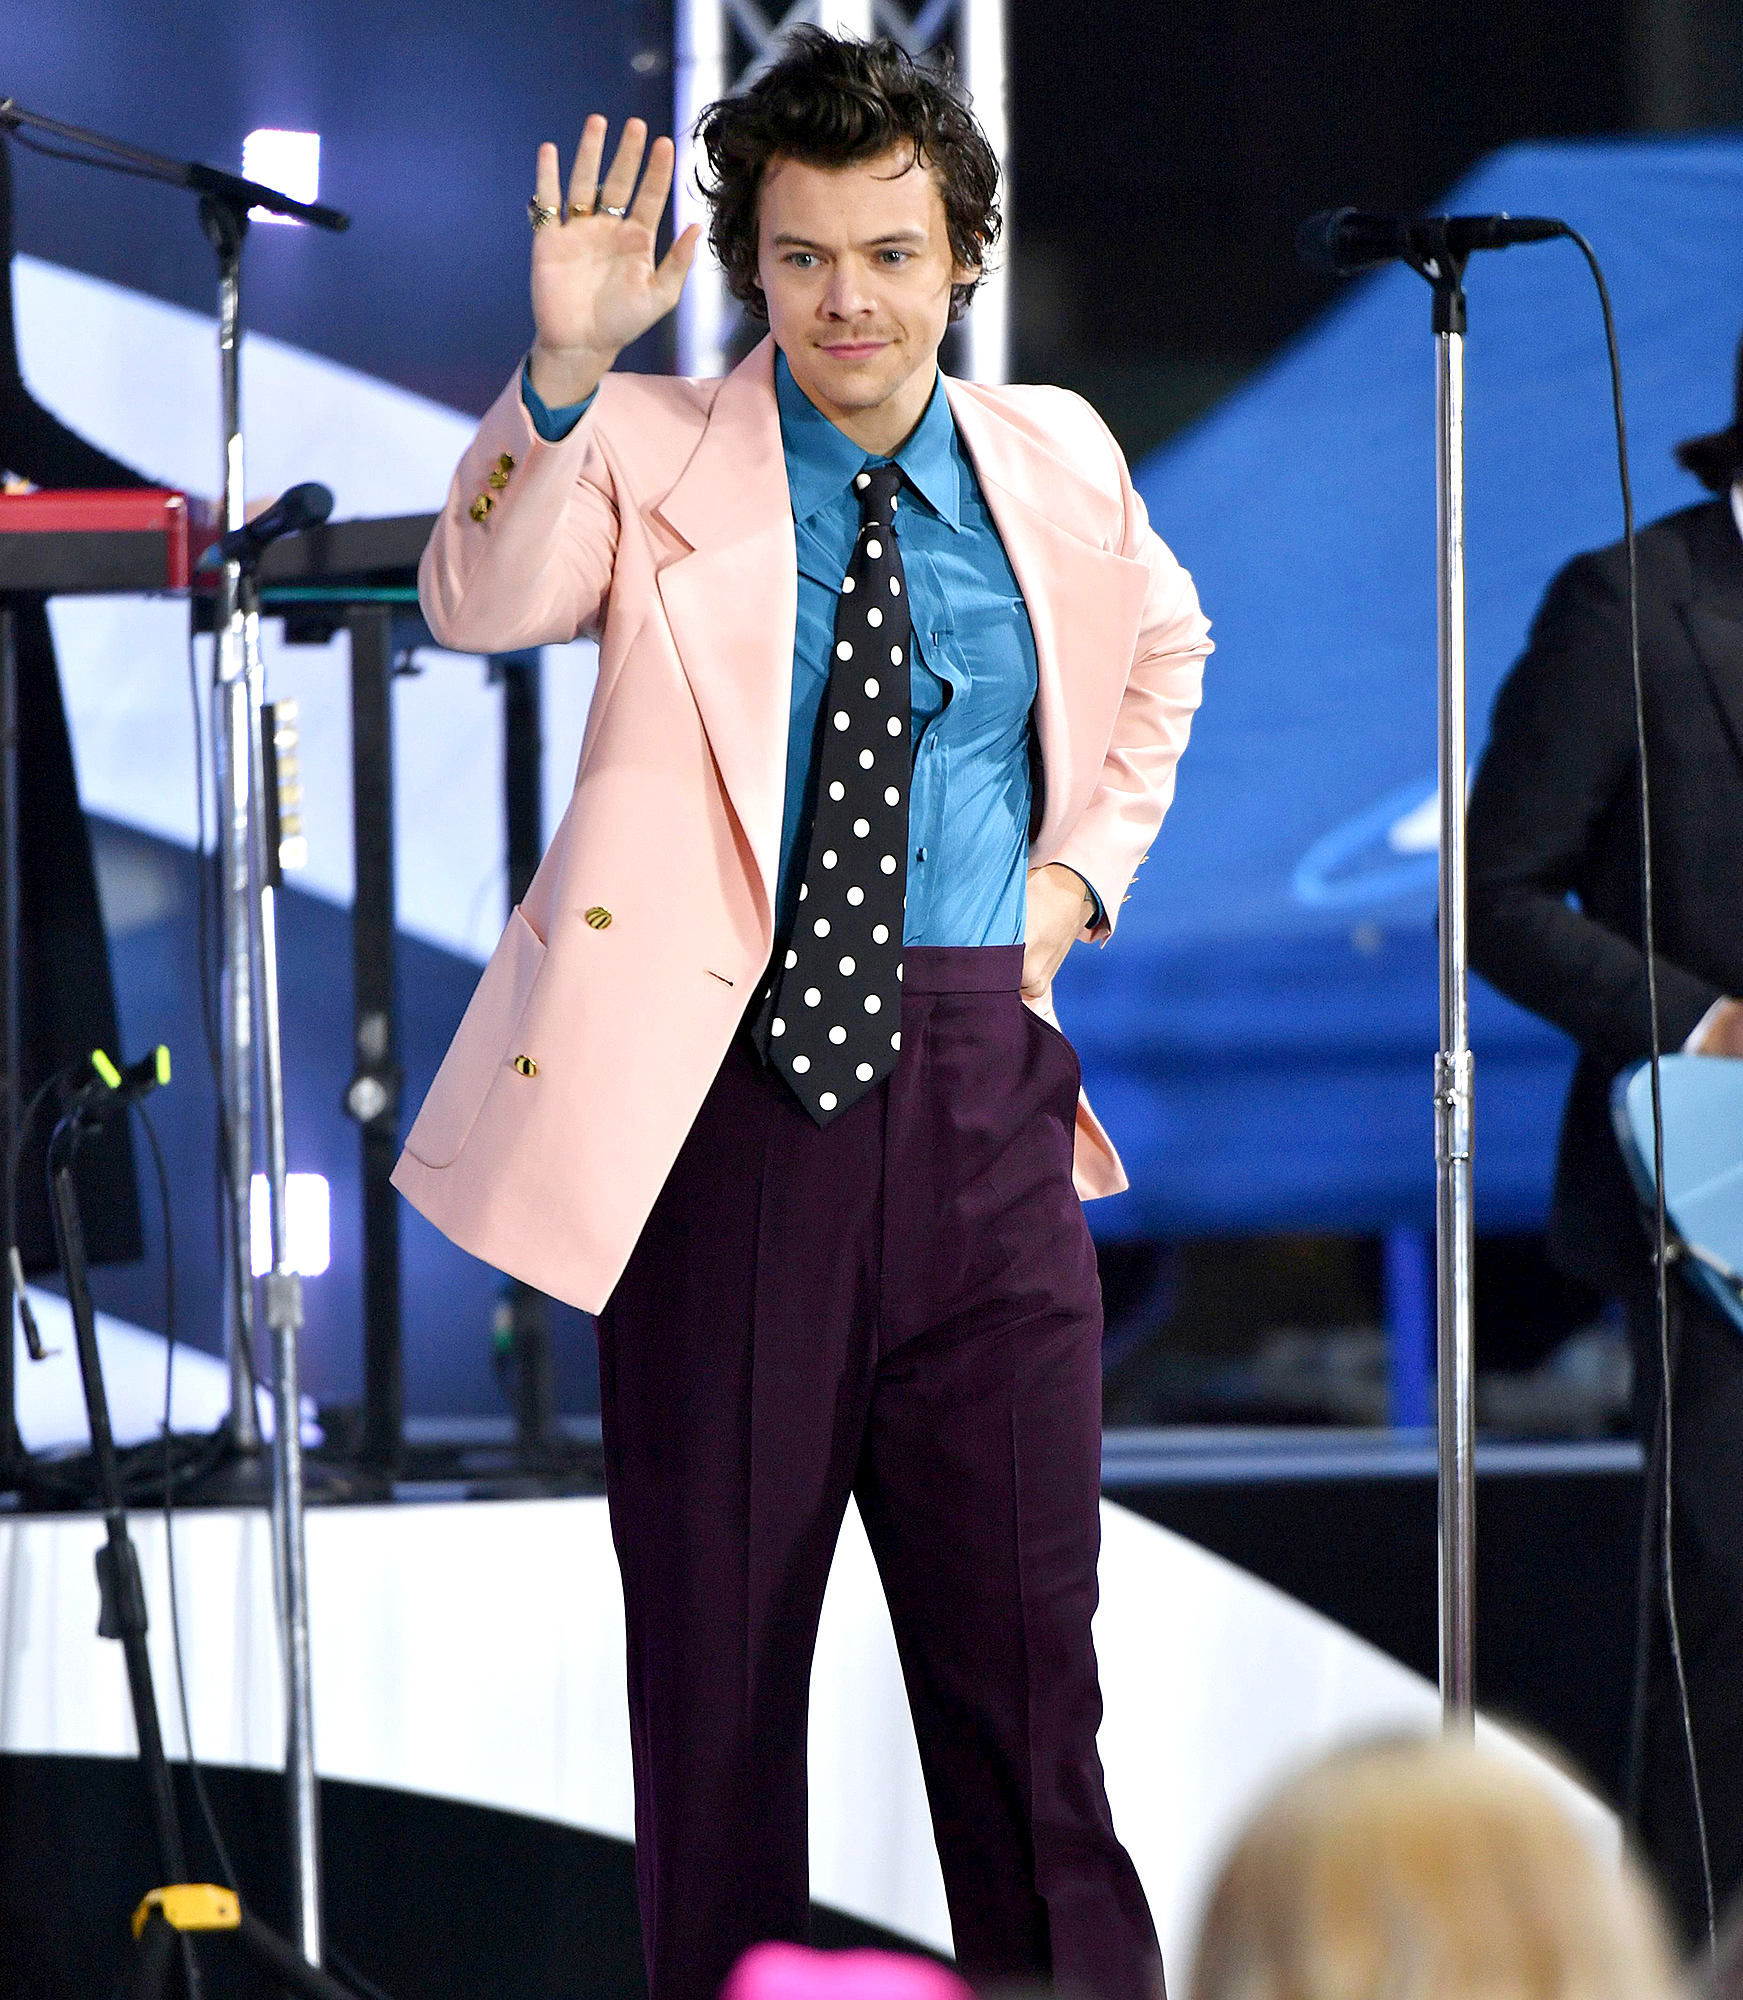 Harry-Styles-Breaks-Silence-After-Being-Mugged-at-Gunpoint